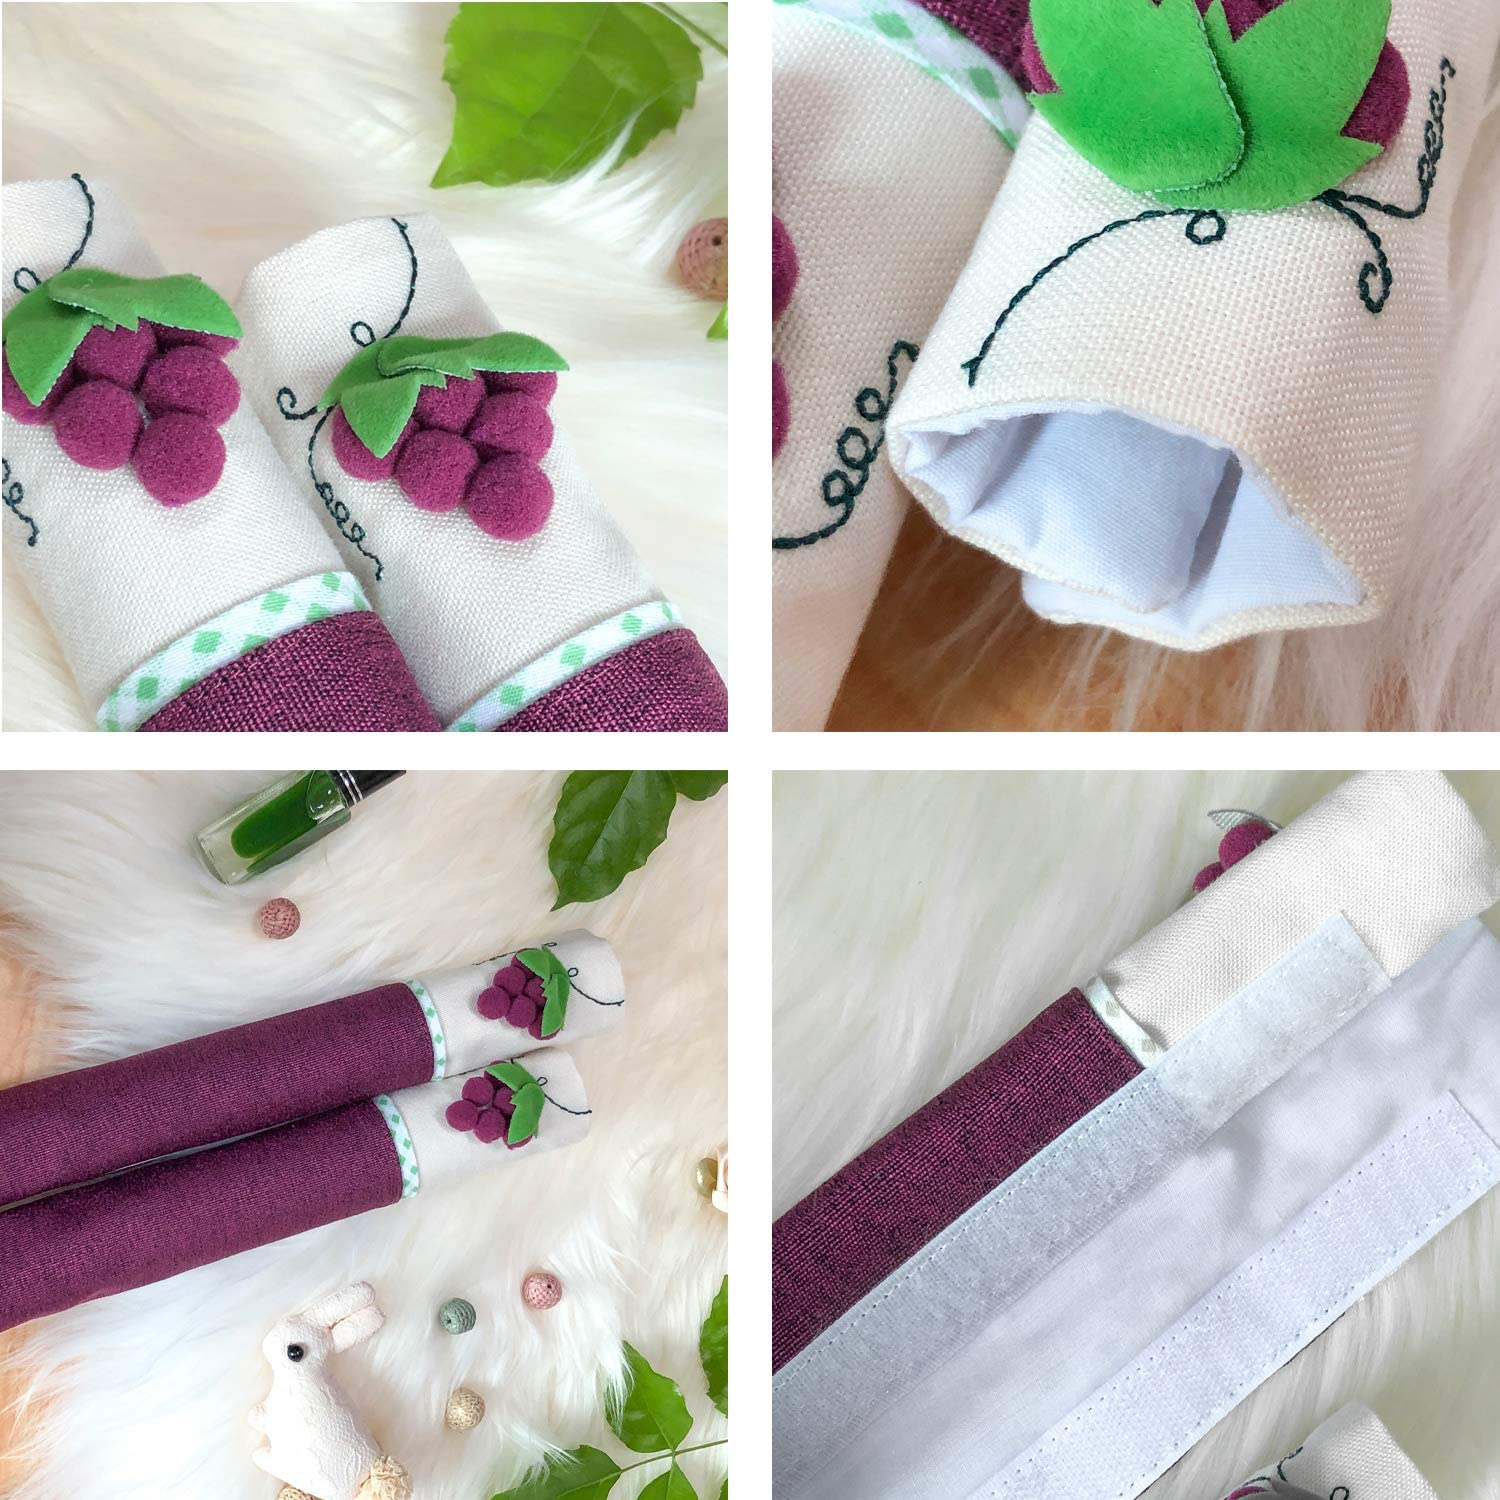 KEFAN Refrigerator and Door Handle Covers Kitchen Appliance Protective Gloves Anti-Slip Decor for Ovens Microwaves Purple